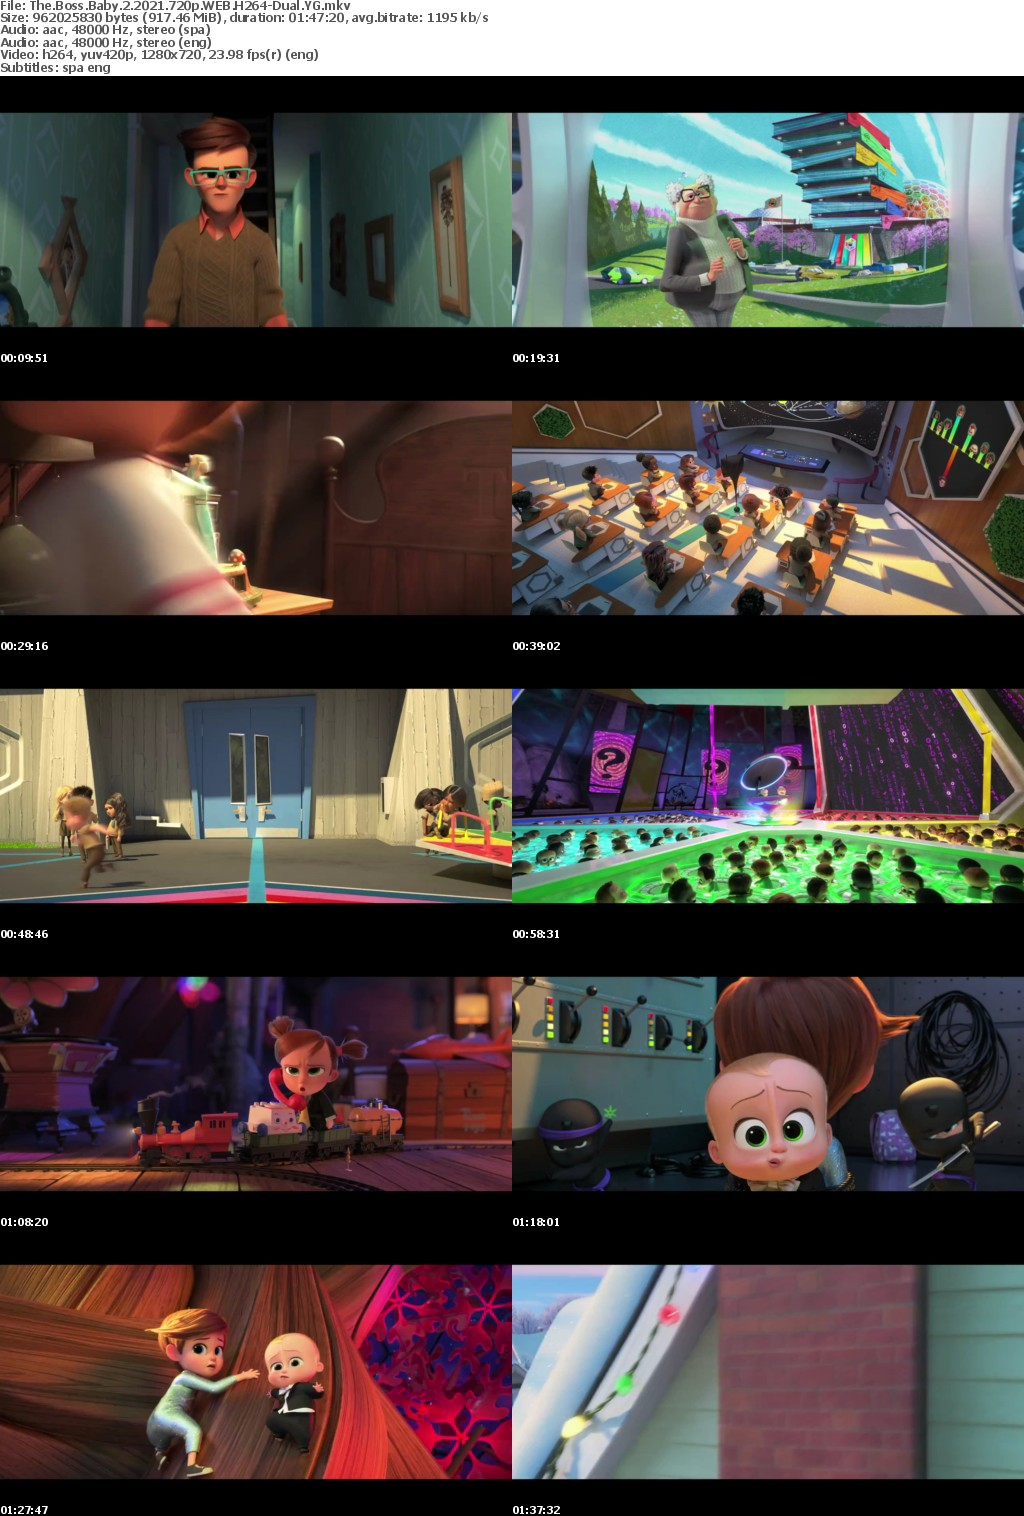 The Boss Baby Family Business 2021 720p WEB H264-Dual YG